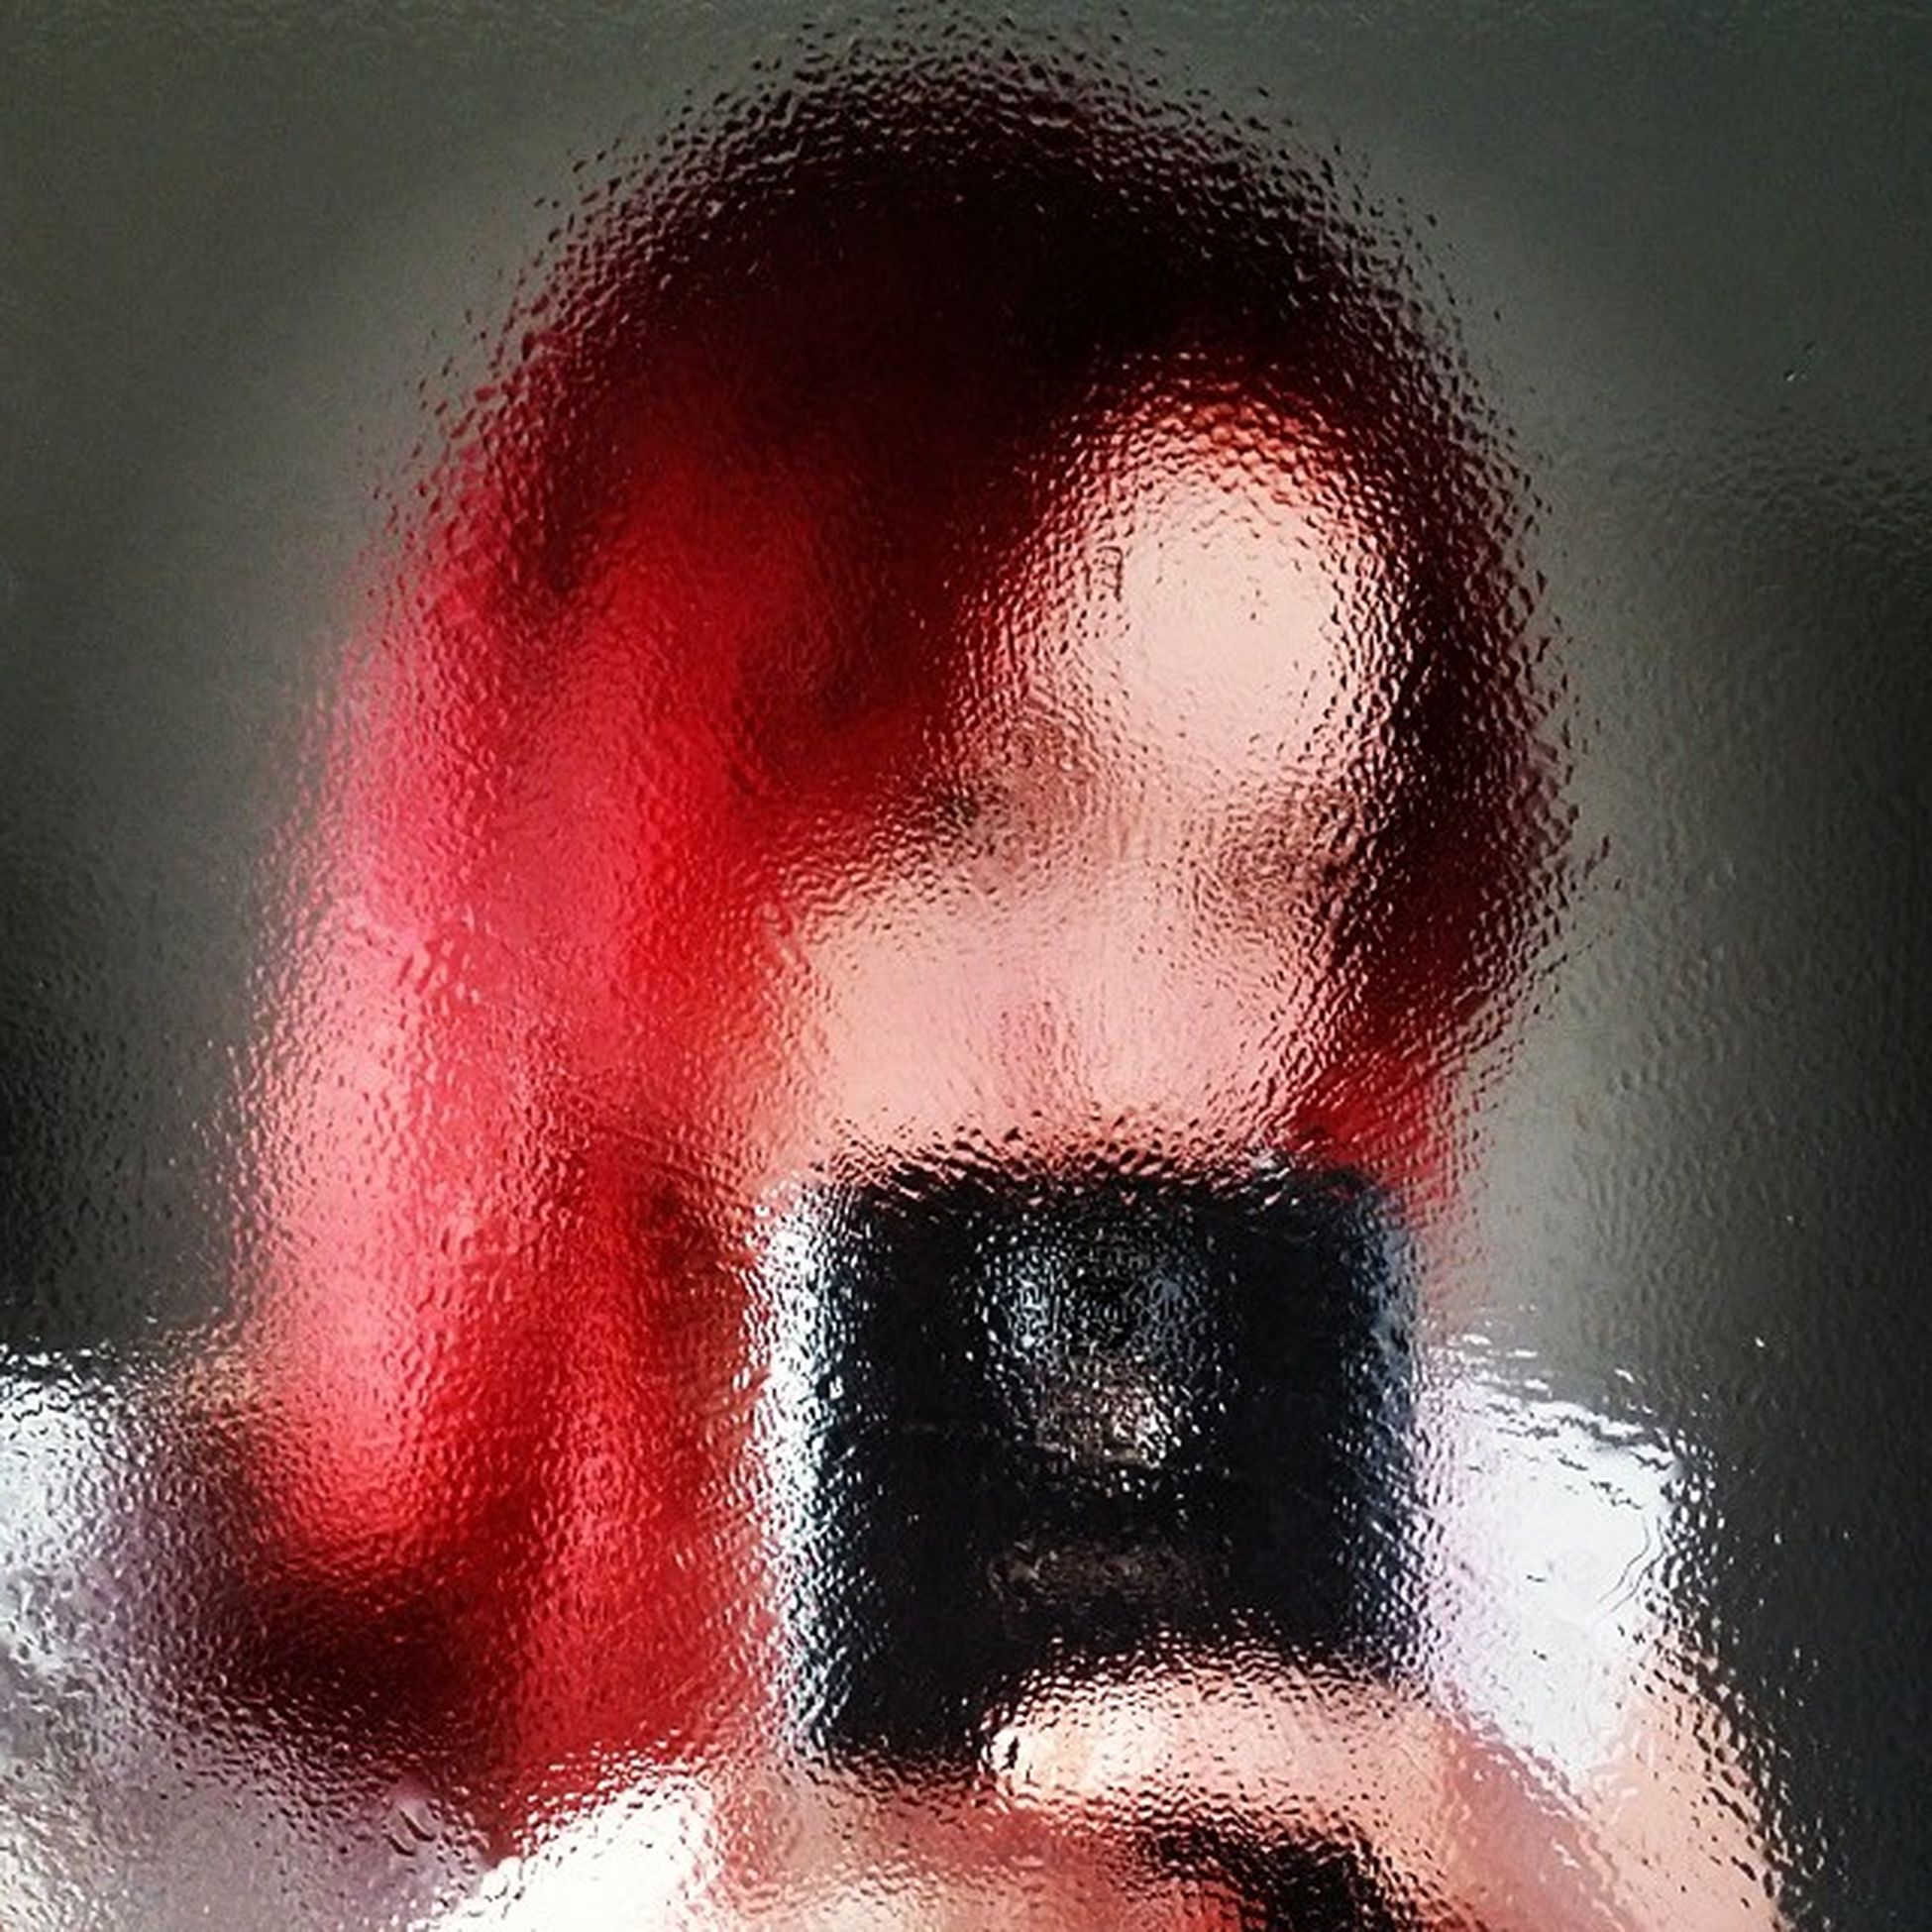 Sneakpeak Rainy Raindrops Redhead Ilrgirls Droplets Steamy Redheadproblems Samsung Galaxy